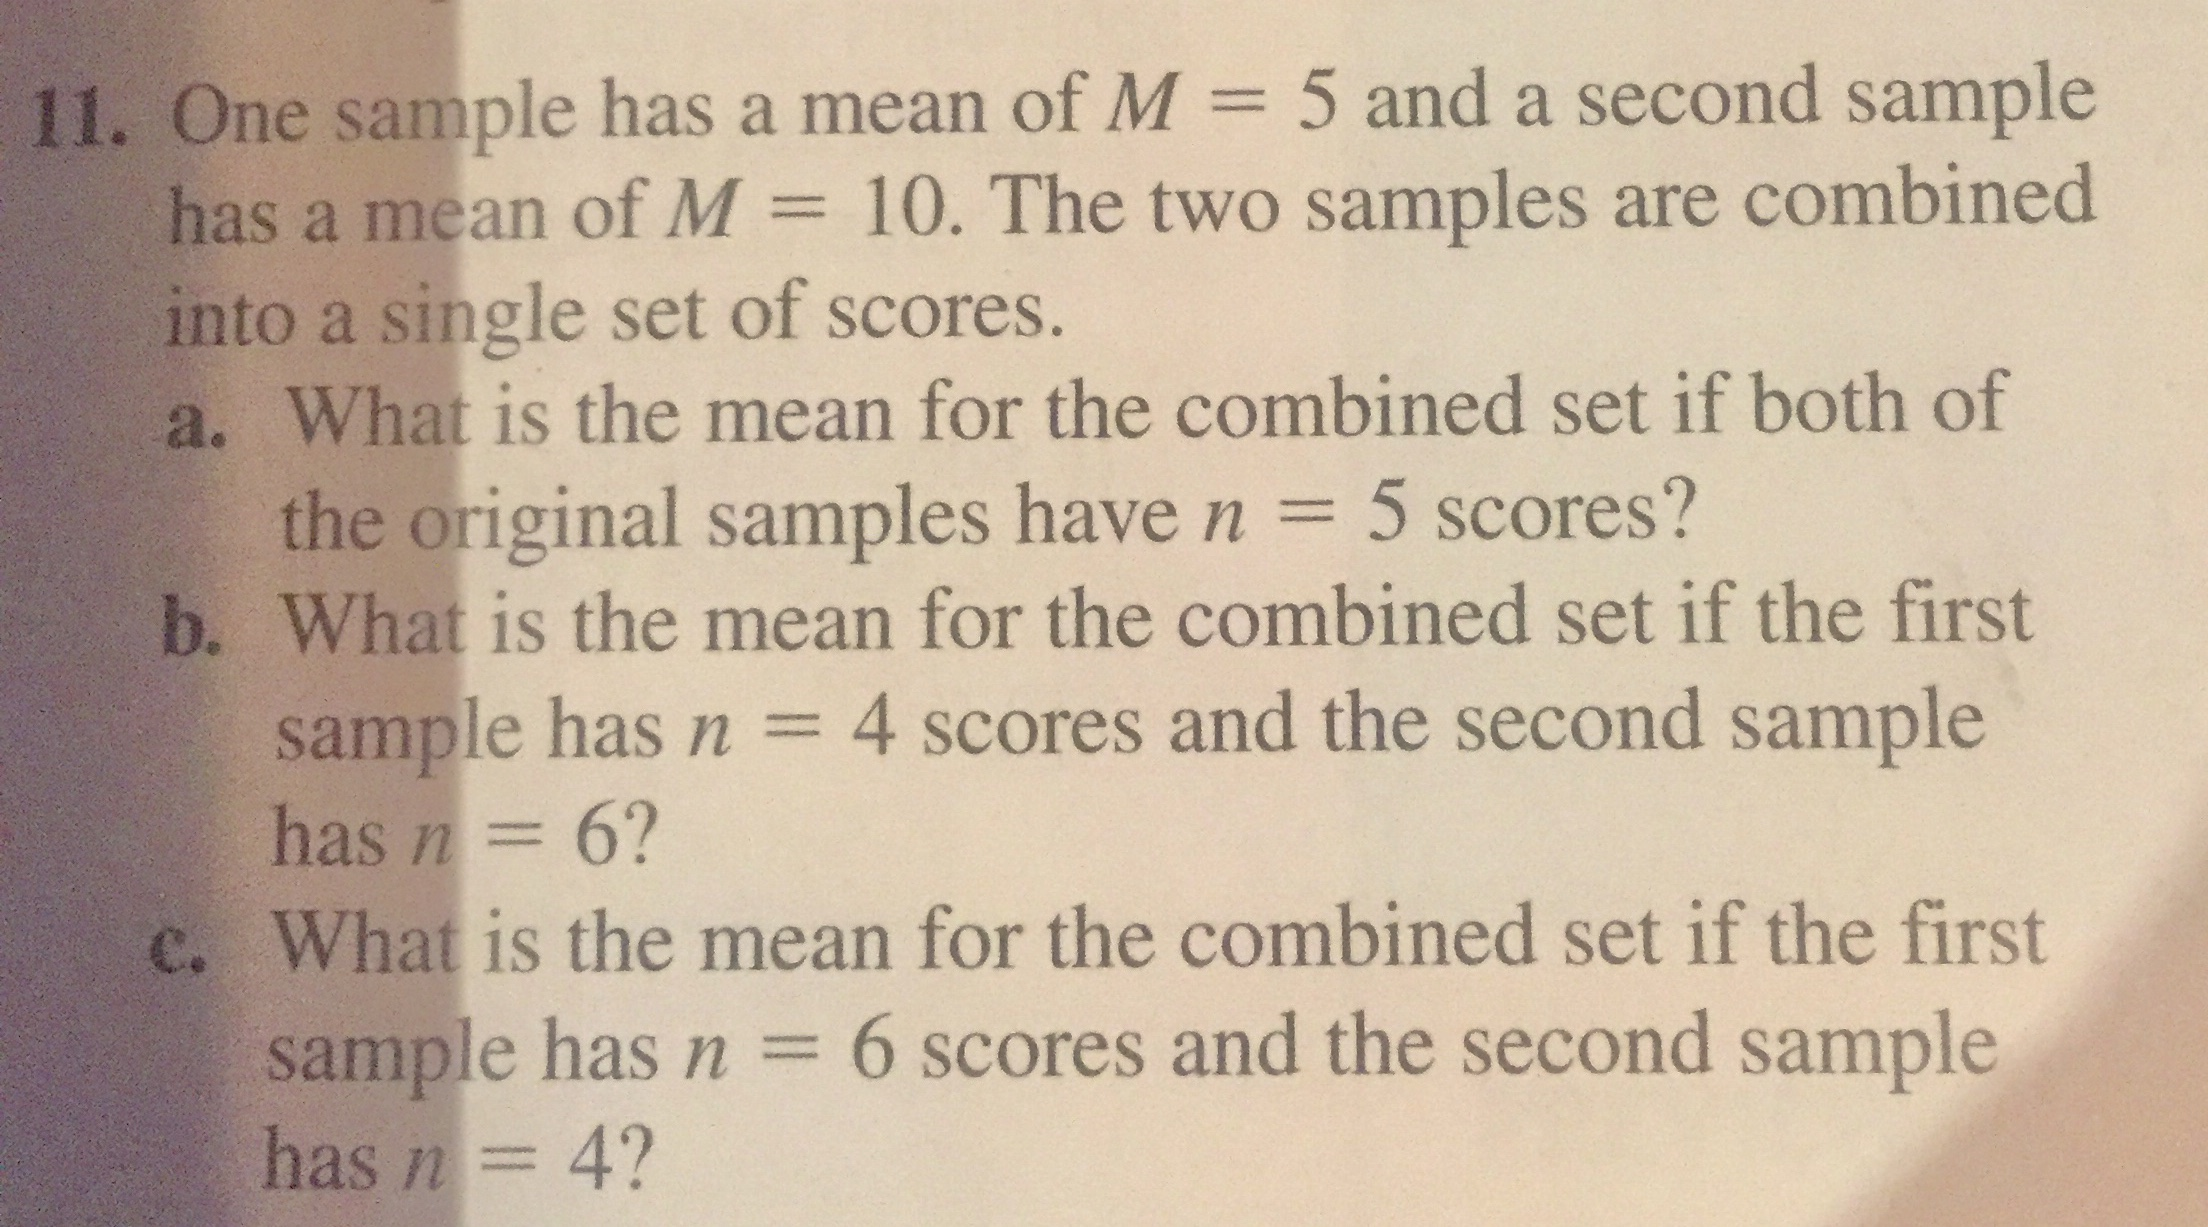 11. One sample has a mean of M = 5 and a second sample has a mean of M = 10. The two samples are combined into a single set of scores. a. What is the mean for the combined set if both of the original samples have n = 5 scores? b. What is the mean for the combined set if the first sample has n = 4 scores and the second sample has n= 6? c. What is the mean for the combined set if the first sample has n = 6 scores and the second sample has n= 4? %3D